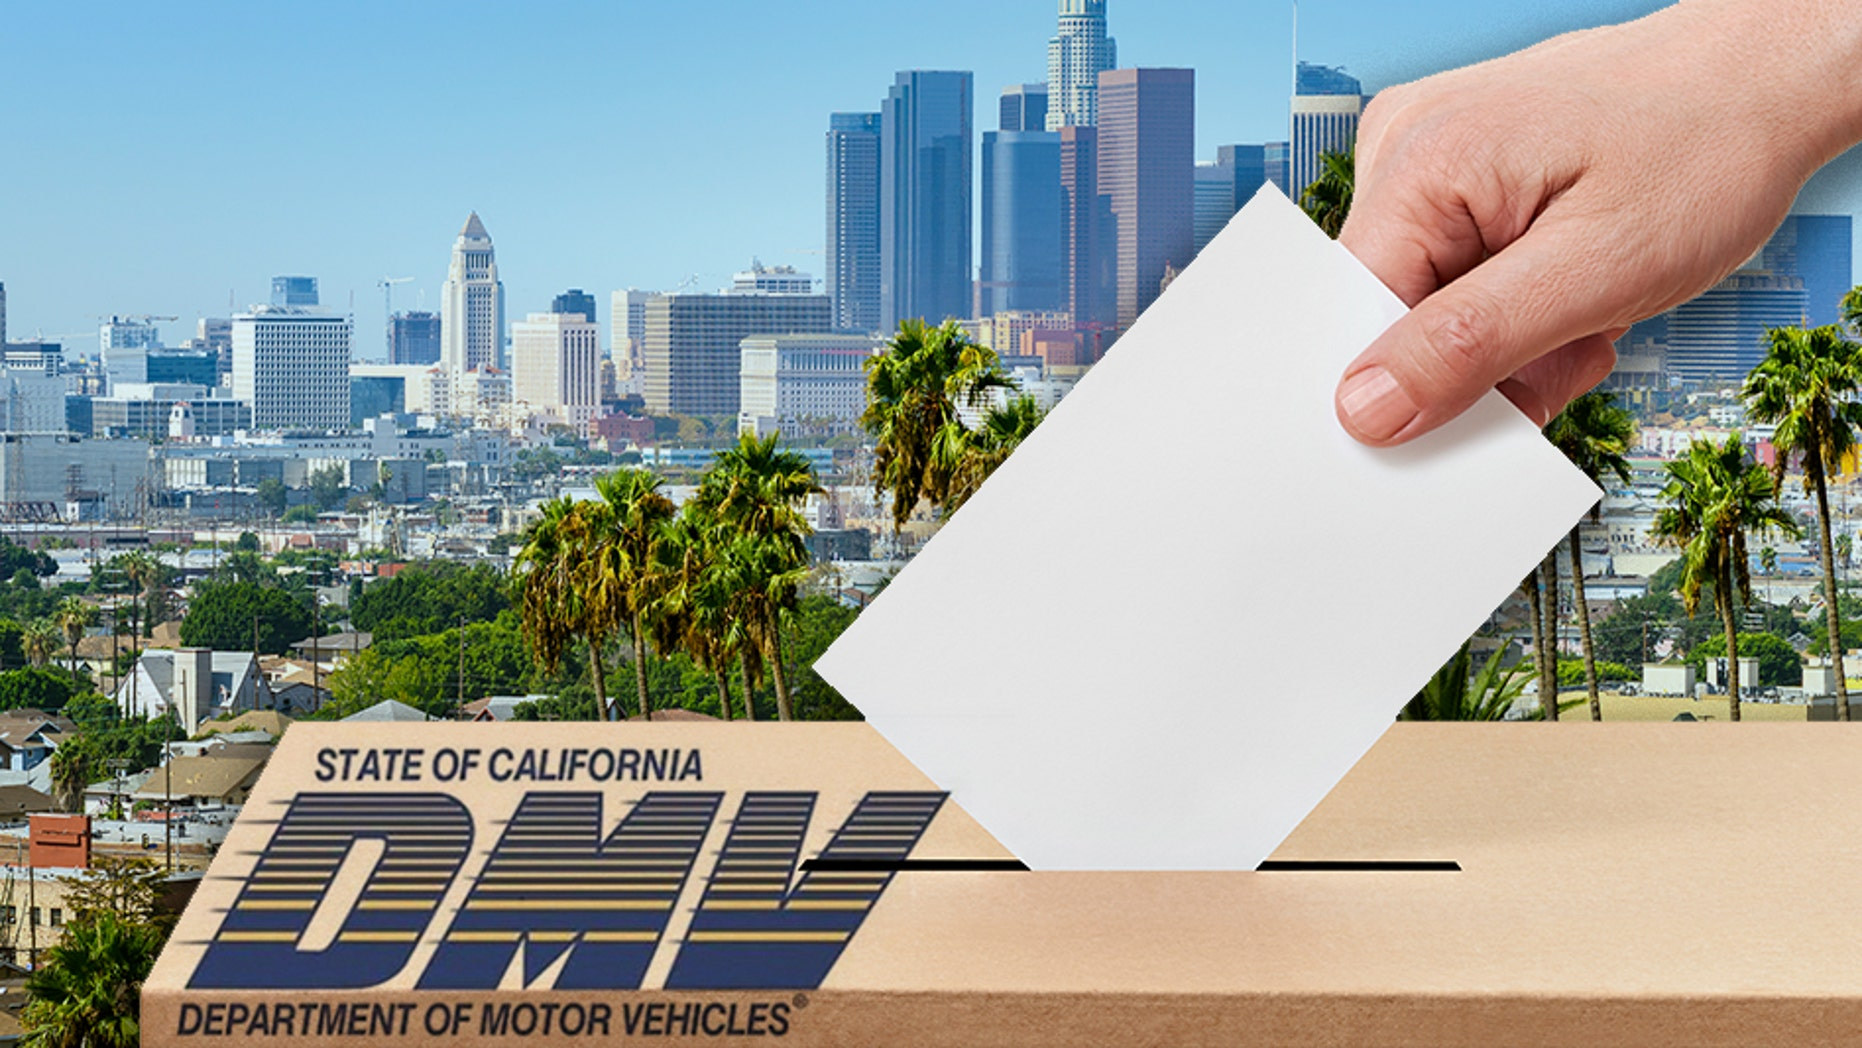 The California DMV reportedly submitted more than 20,000 voter registrations to the Secretary of State's office.